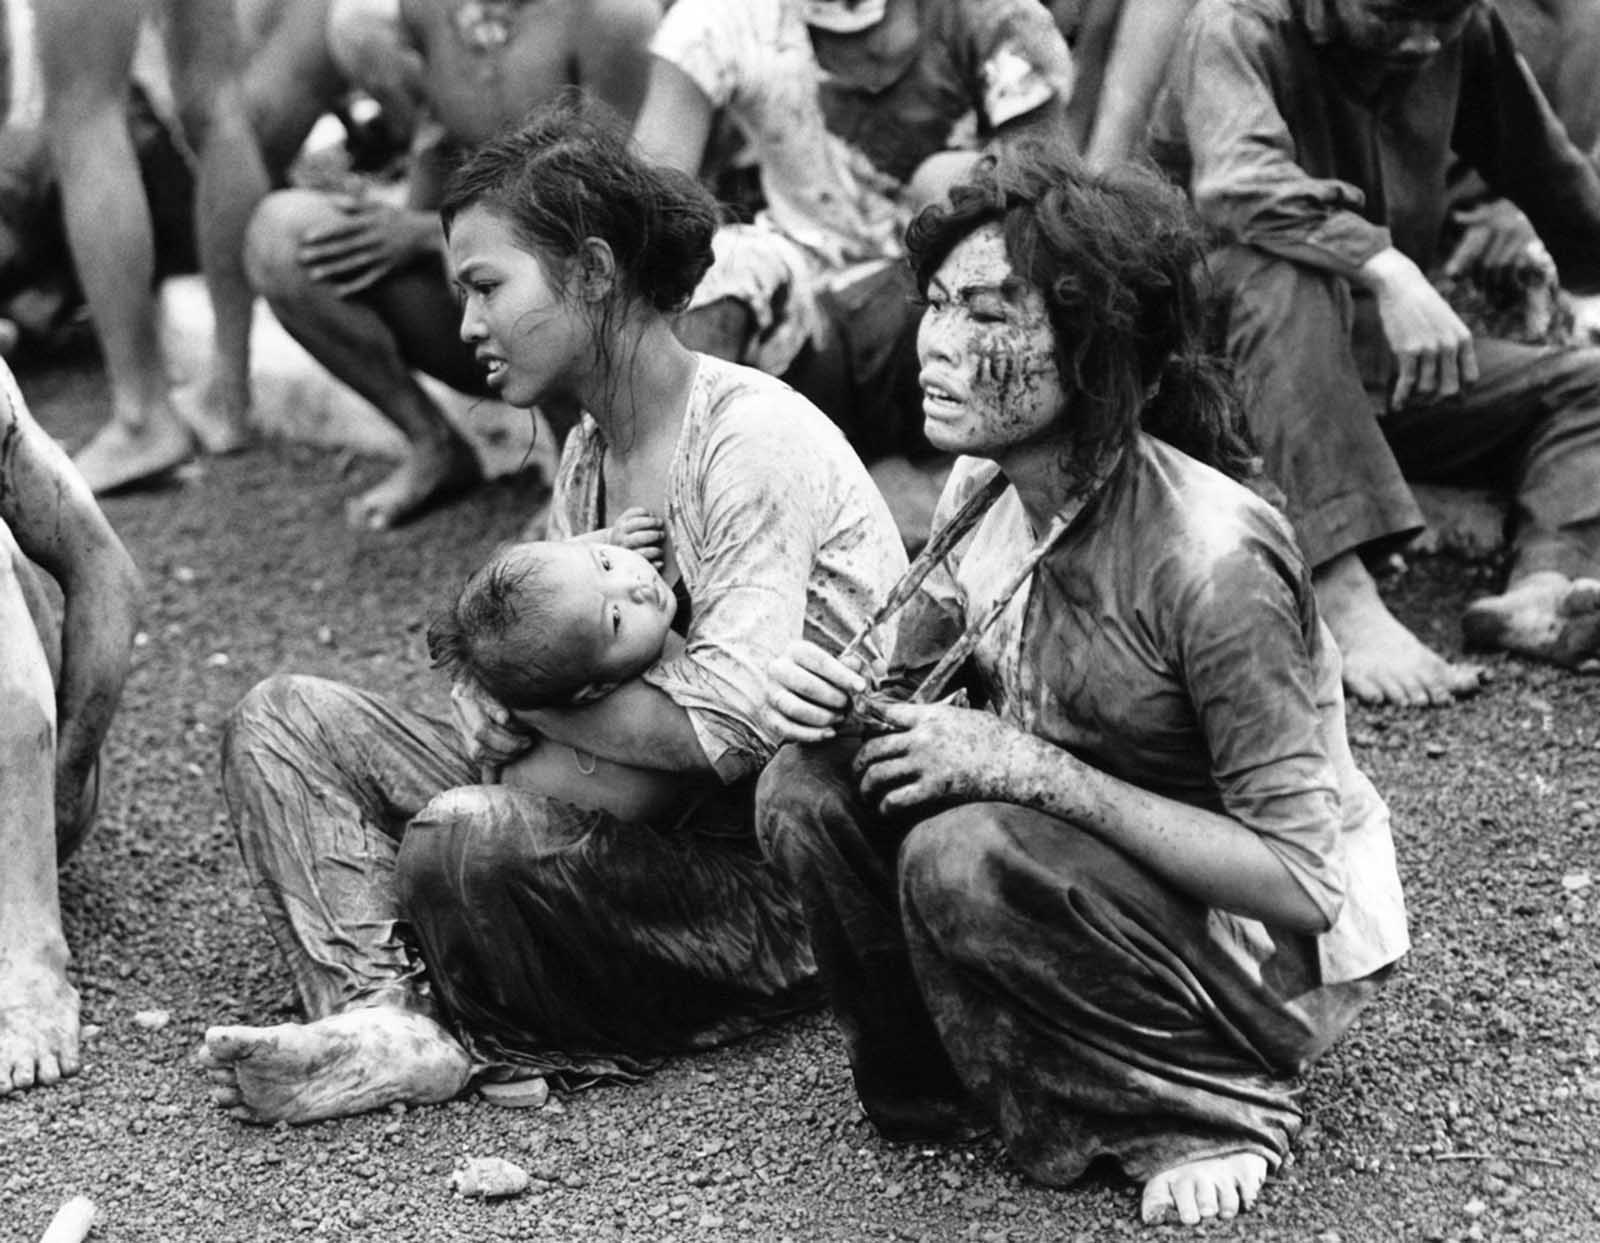 Wounded and shocked civilian survivors of Dong Xoai crawl out of a fort bunker on June 6, 1965, where they survived murderous ground fighting and air bombardments of the previous two days.